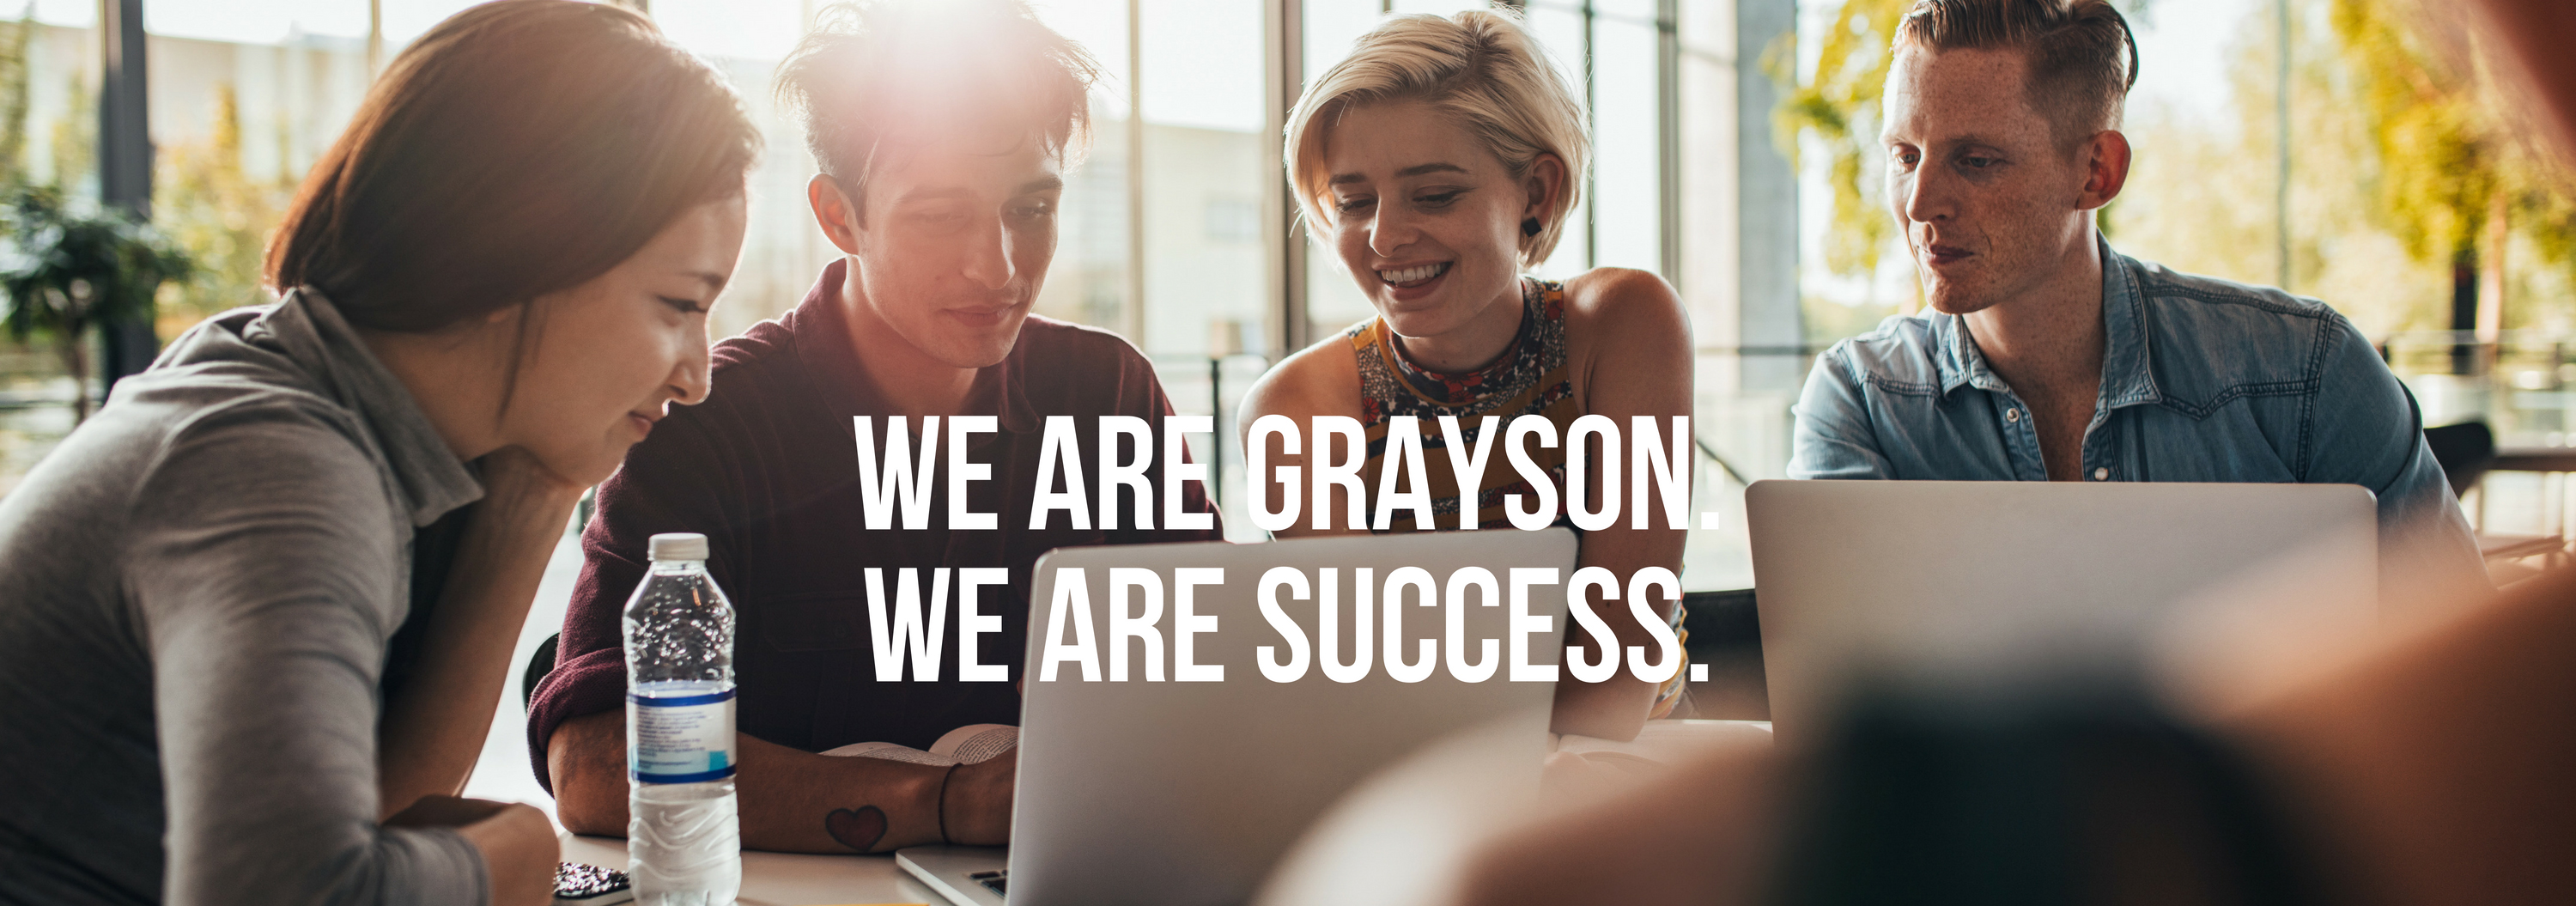 We are Grayson. We are Success